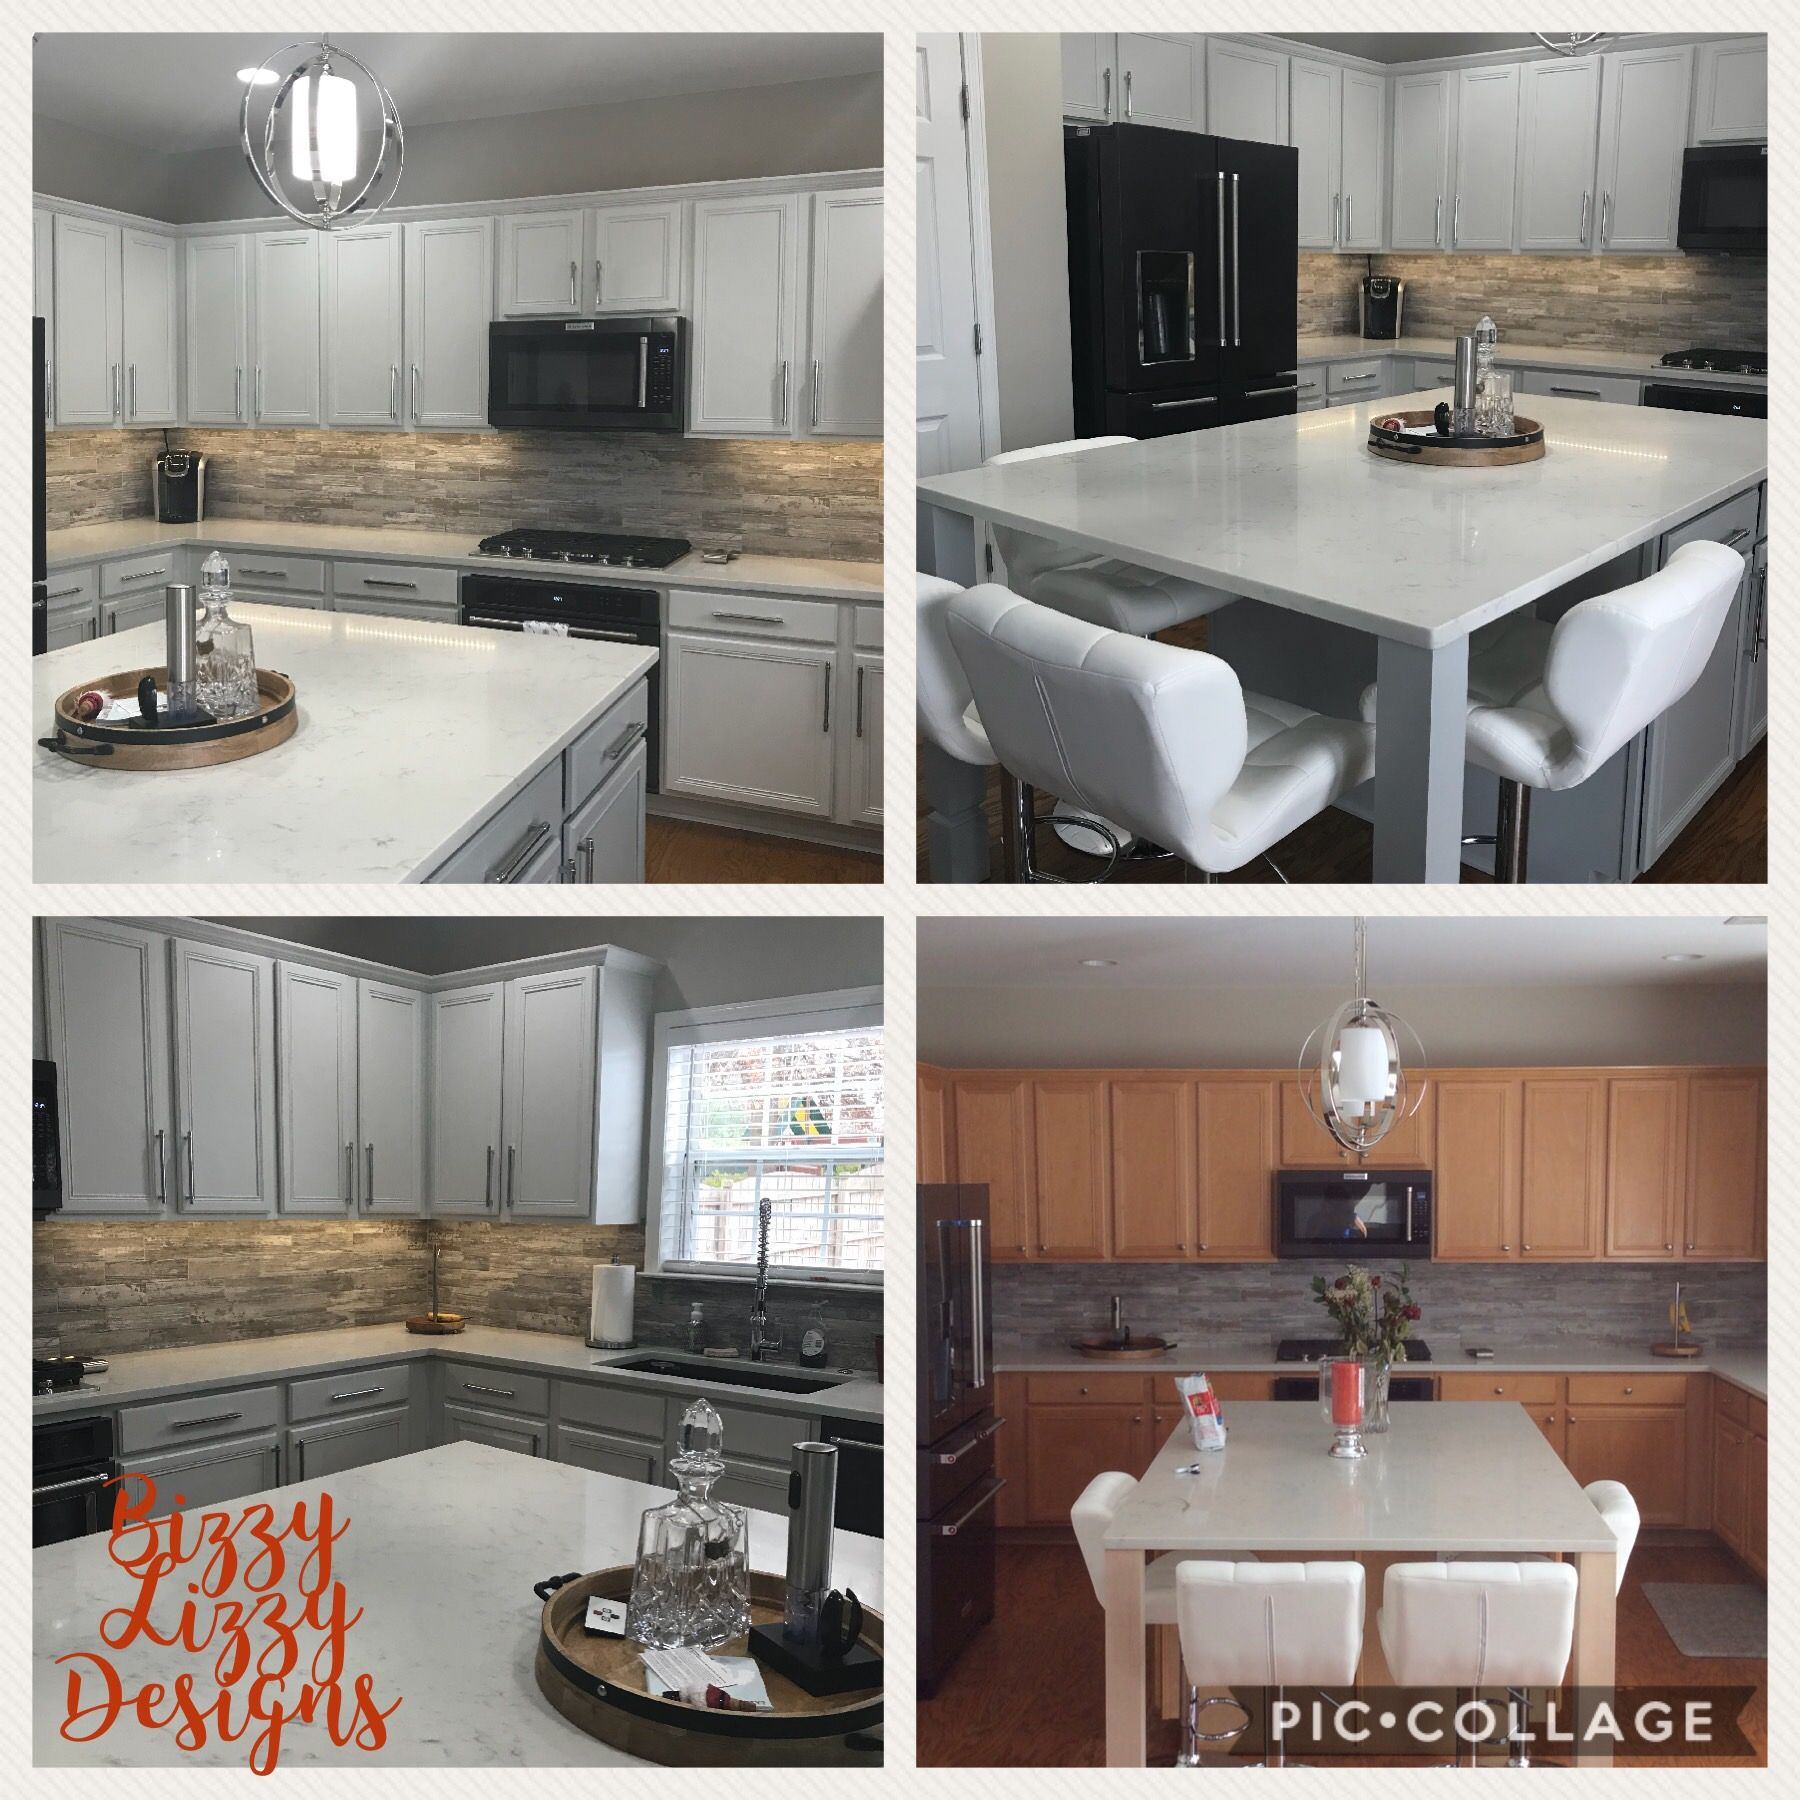 Sherwin Williams Frosty White And Argos Kitchen Cabinets Painted By Bizzy Lizzy Kitchen Interior Design Modern Kitchen Cabinets For Sale White Modern Kitchen